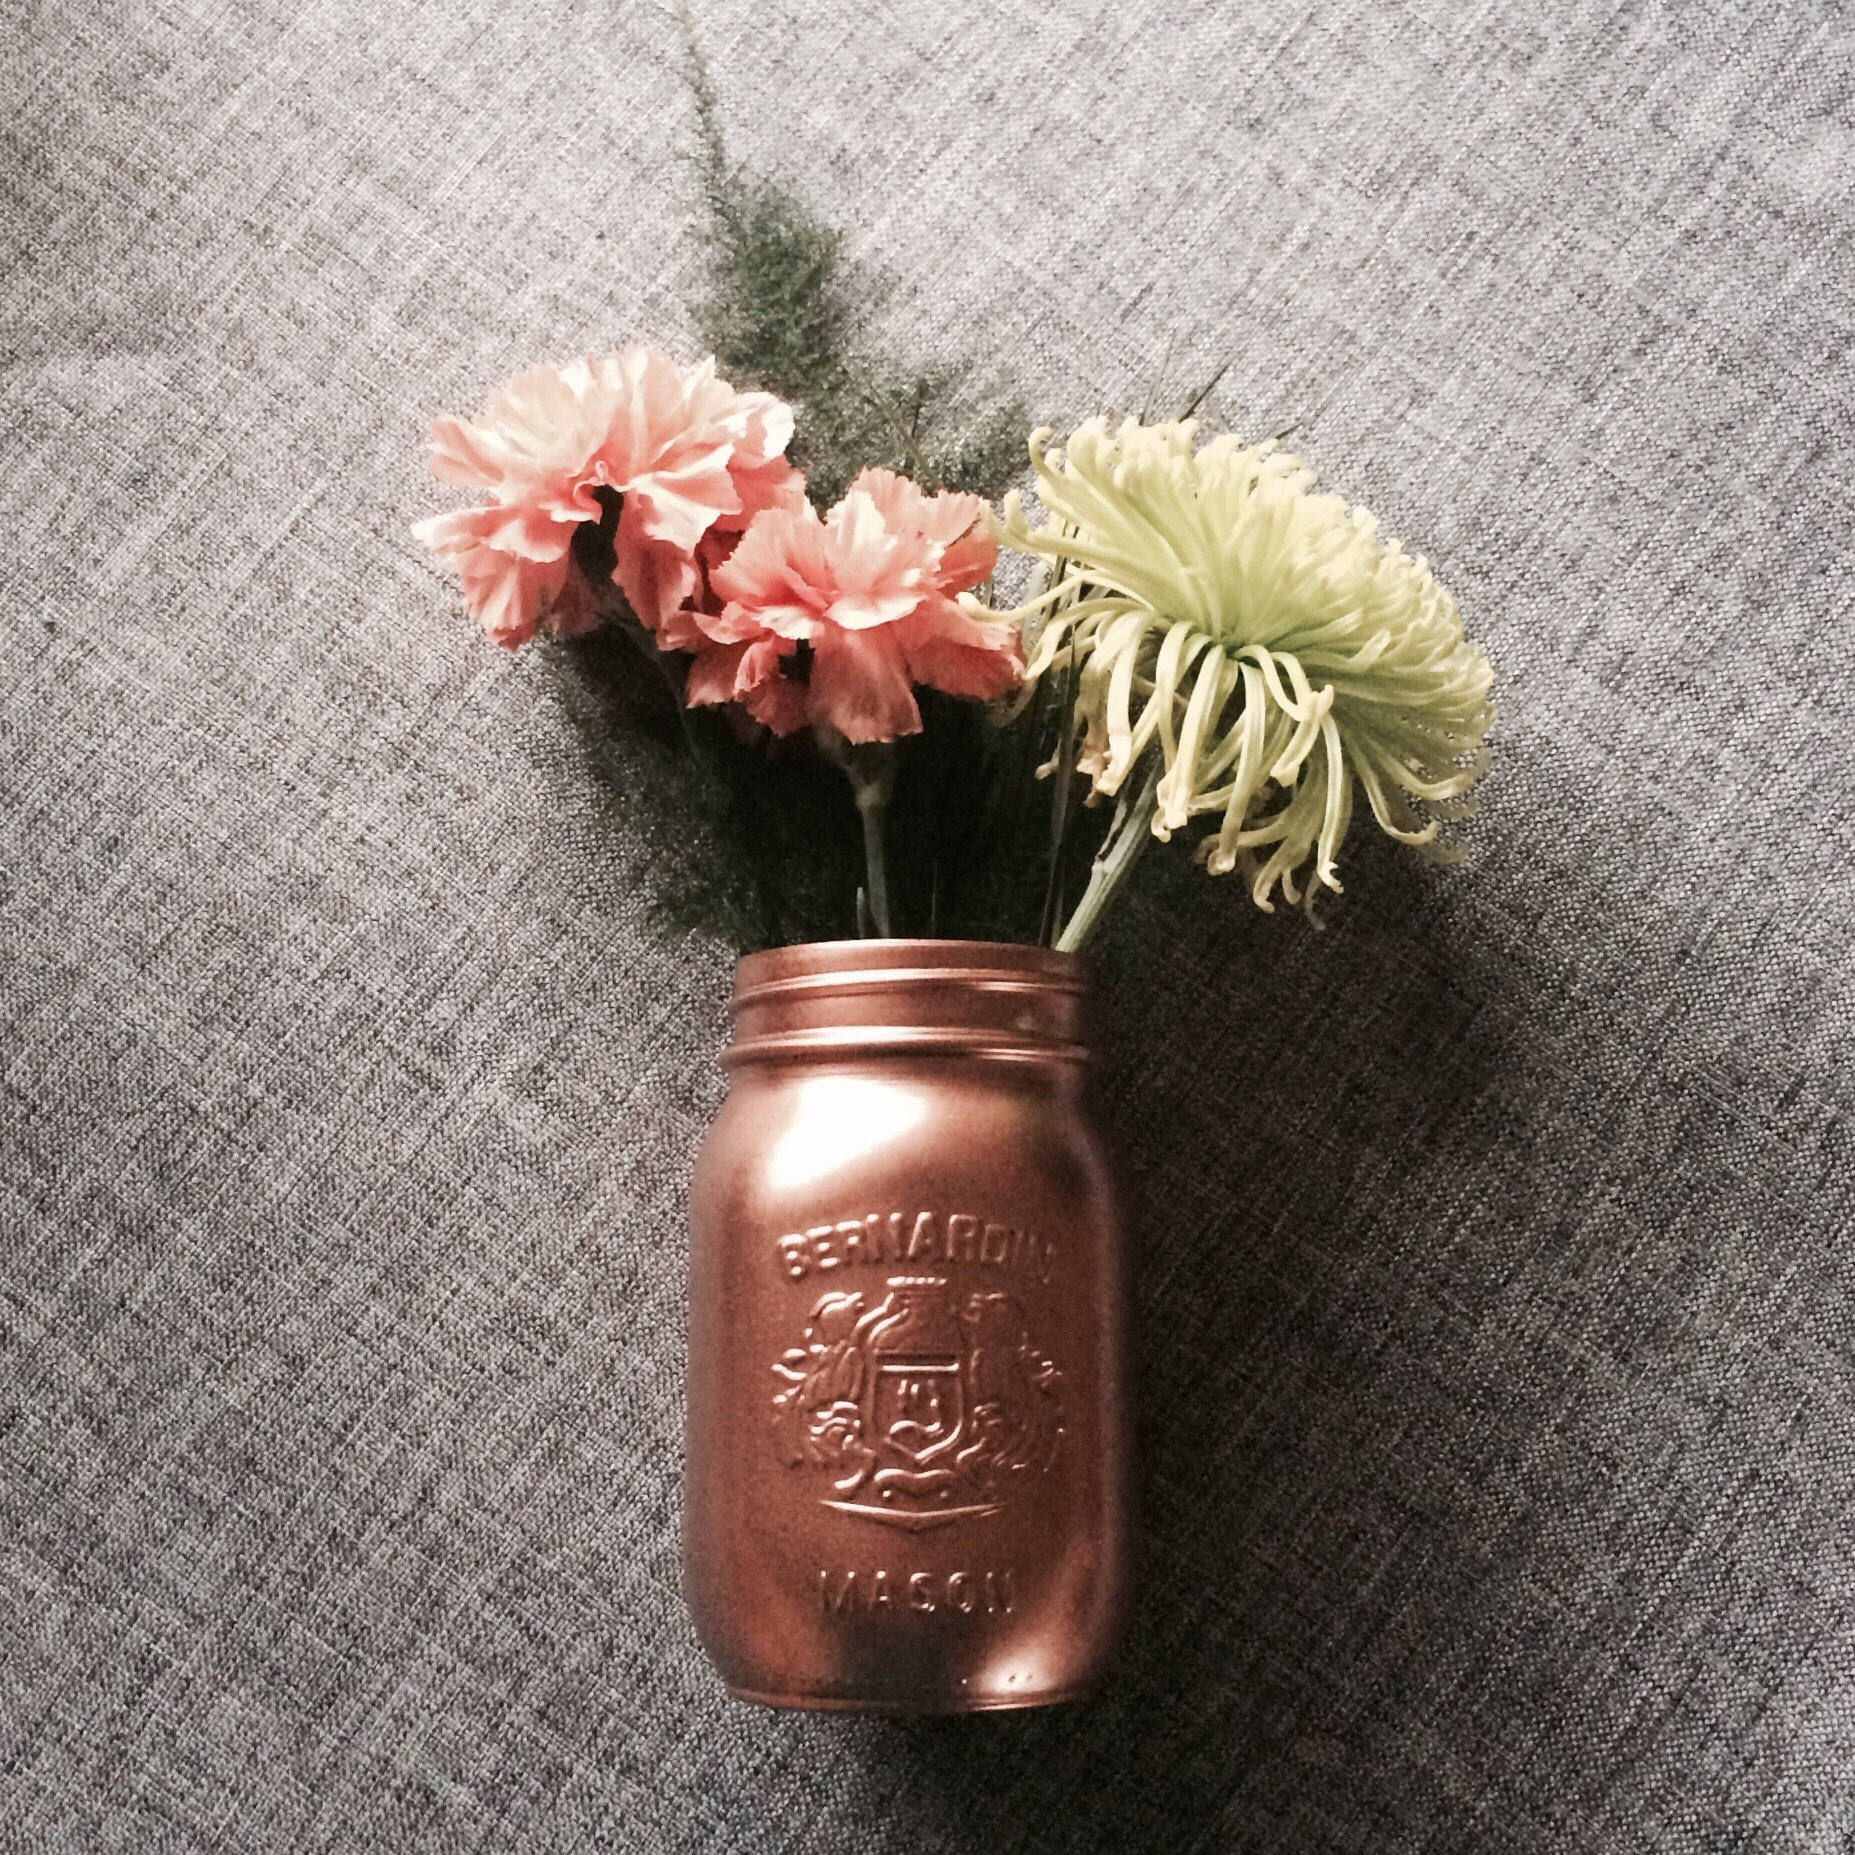 Mason Jar Vase Of Copper Mason Jar Vase 500 Ml Country Chic Painted Mason Jar In Copper Mason Jar Vase 500 Ml Country Chic Painted Mason Jar Mothers Day Gift Simple Wedding Decor Flower Vase Centerpiece by Decorateyourday On Etsy